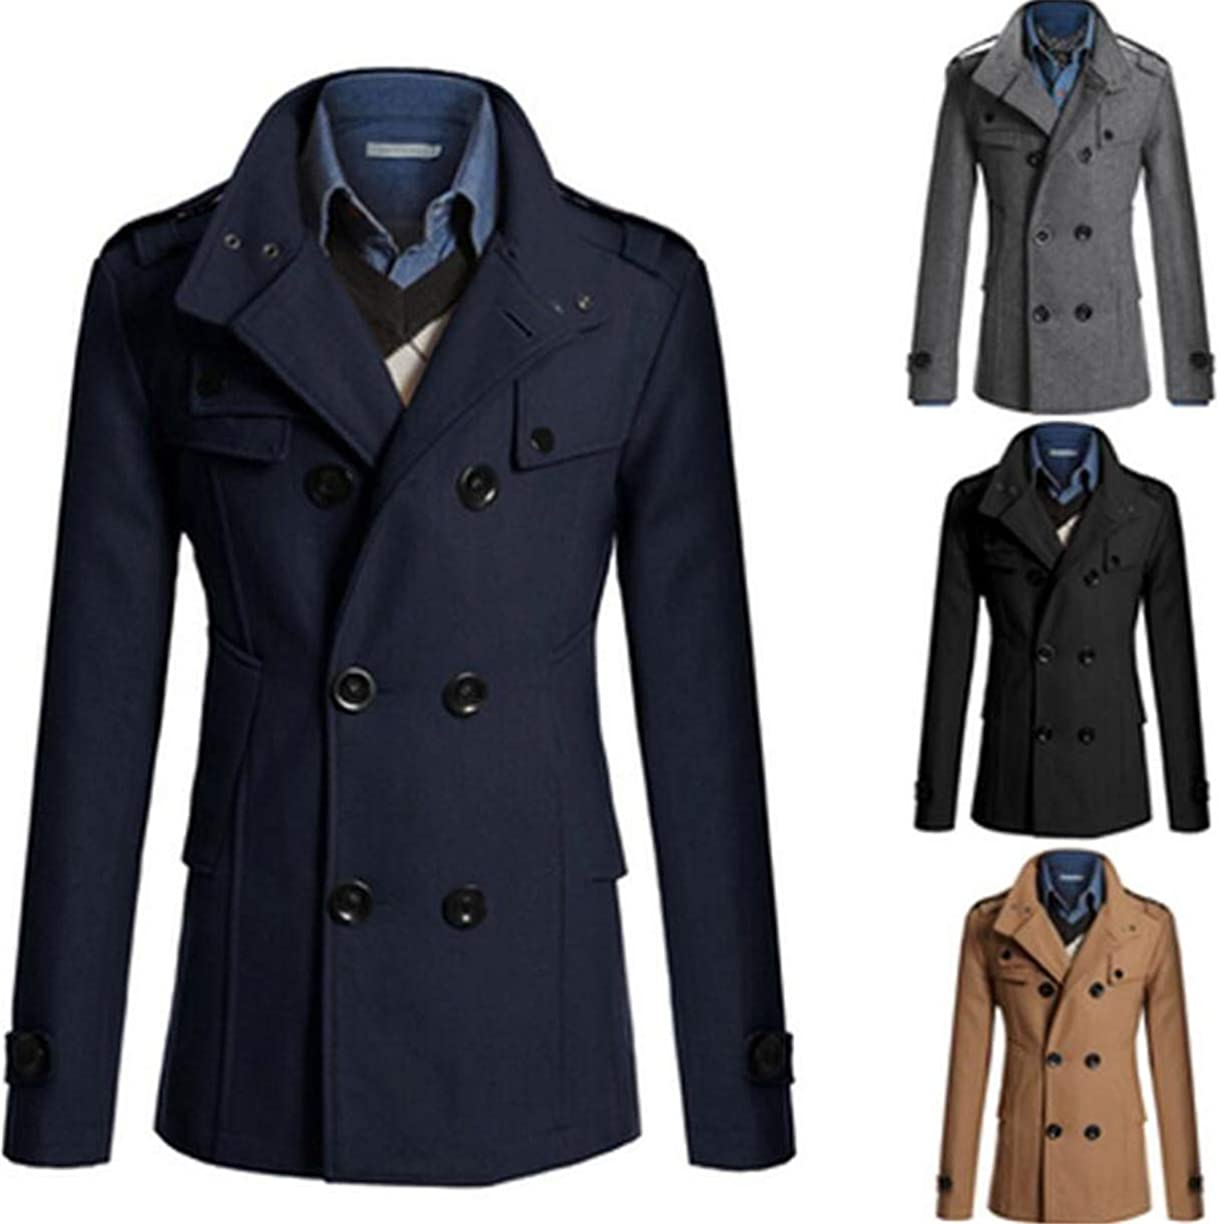 Cafuny Mens Turn Down Collar Wool Blend Double Breasted Casual Slim Trenchcoat Overcoat